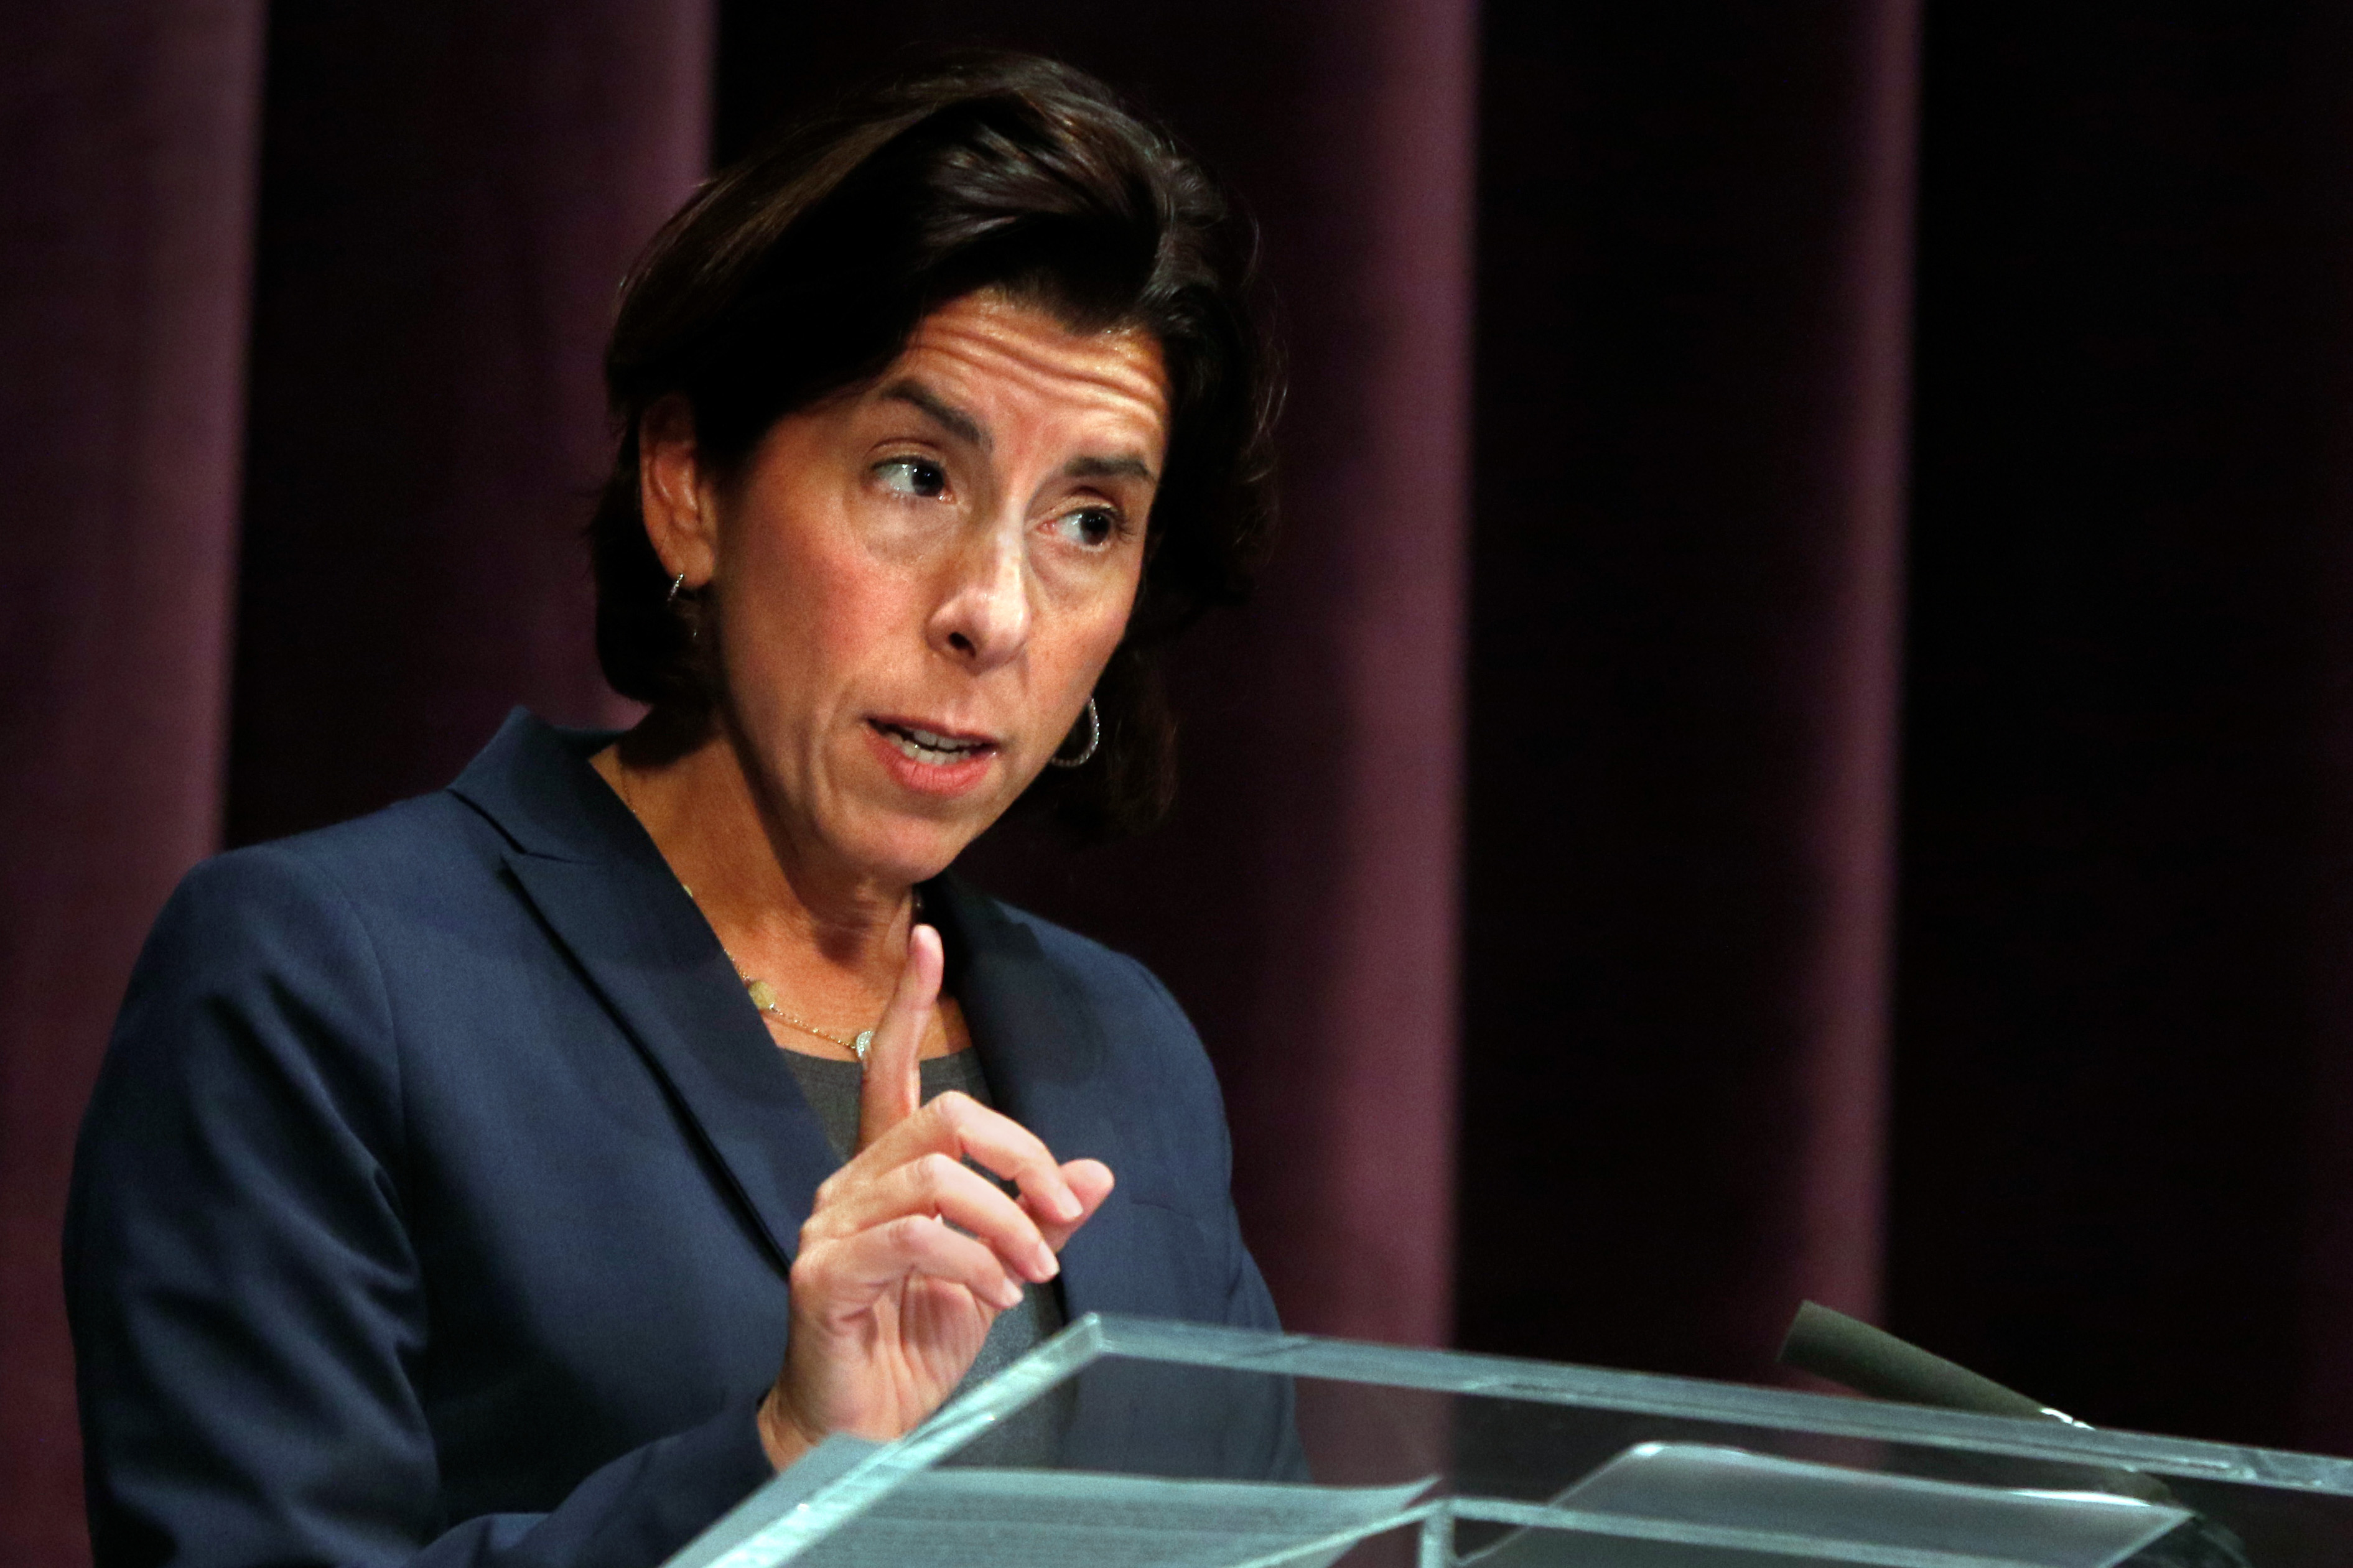 Gov. Gina Raimondo warns at a news briefing Wednesday that she plans to announce new restrictions to curb the spread of the coronavirus.